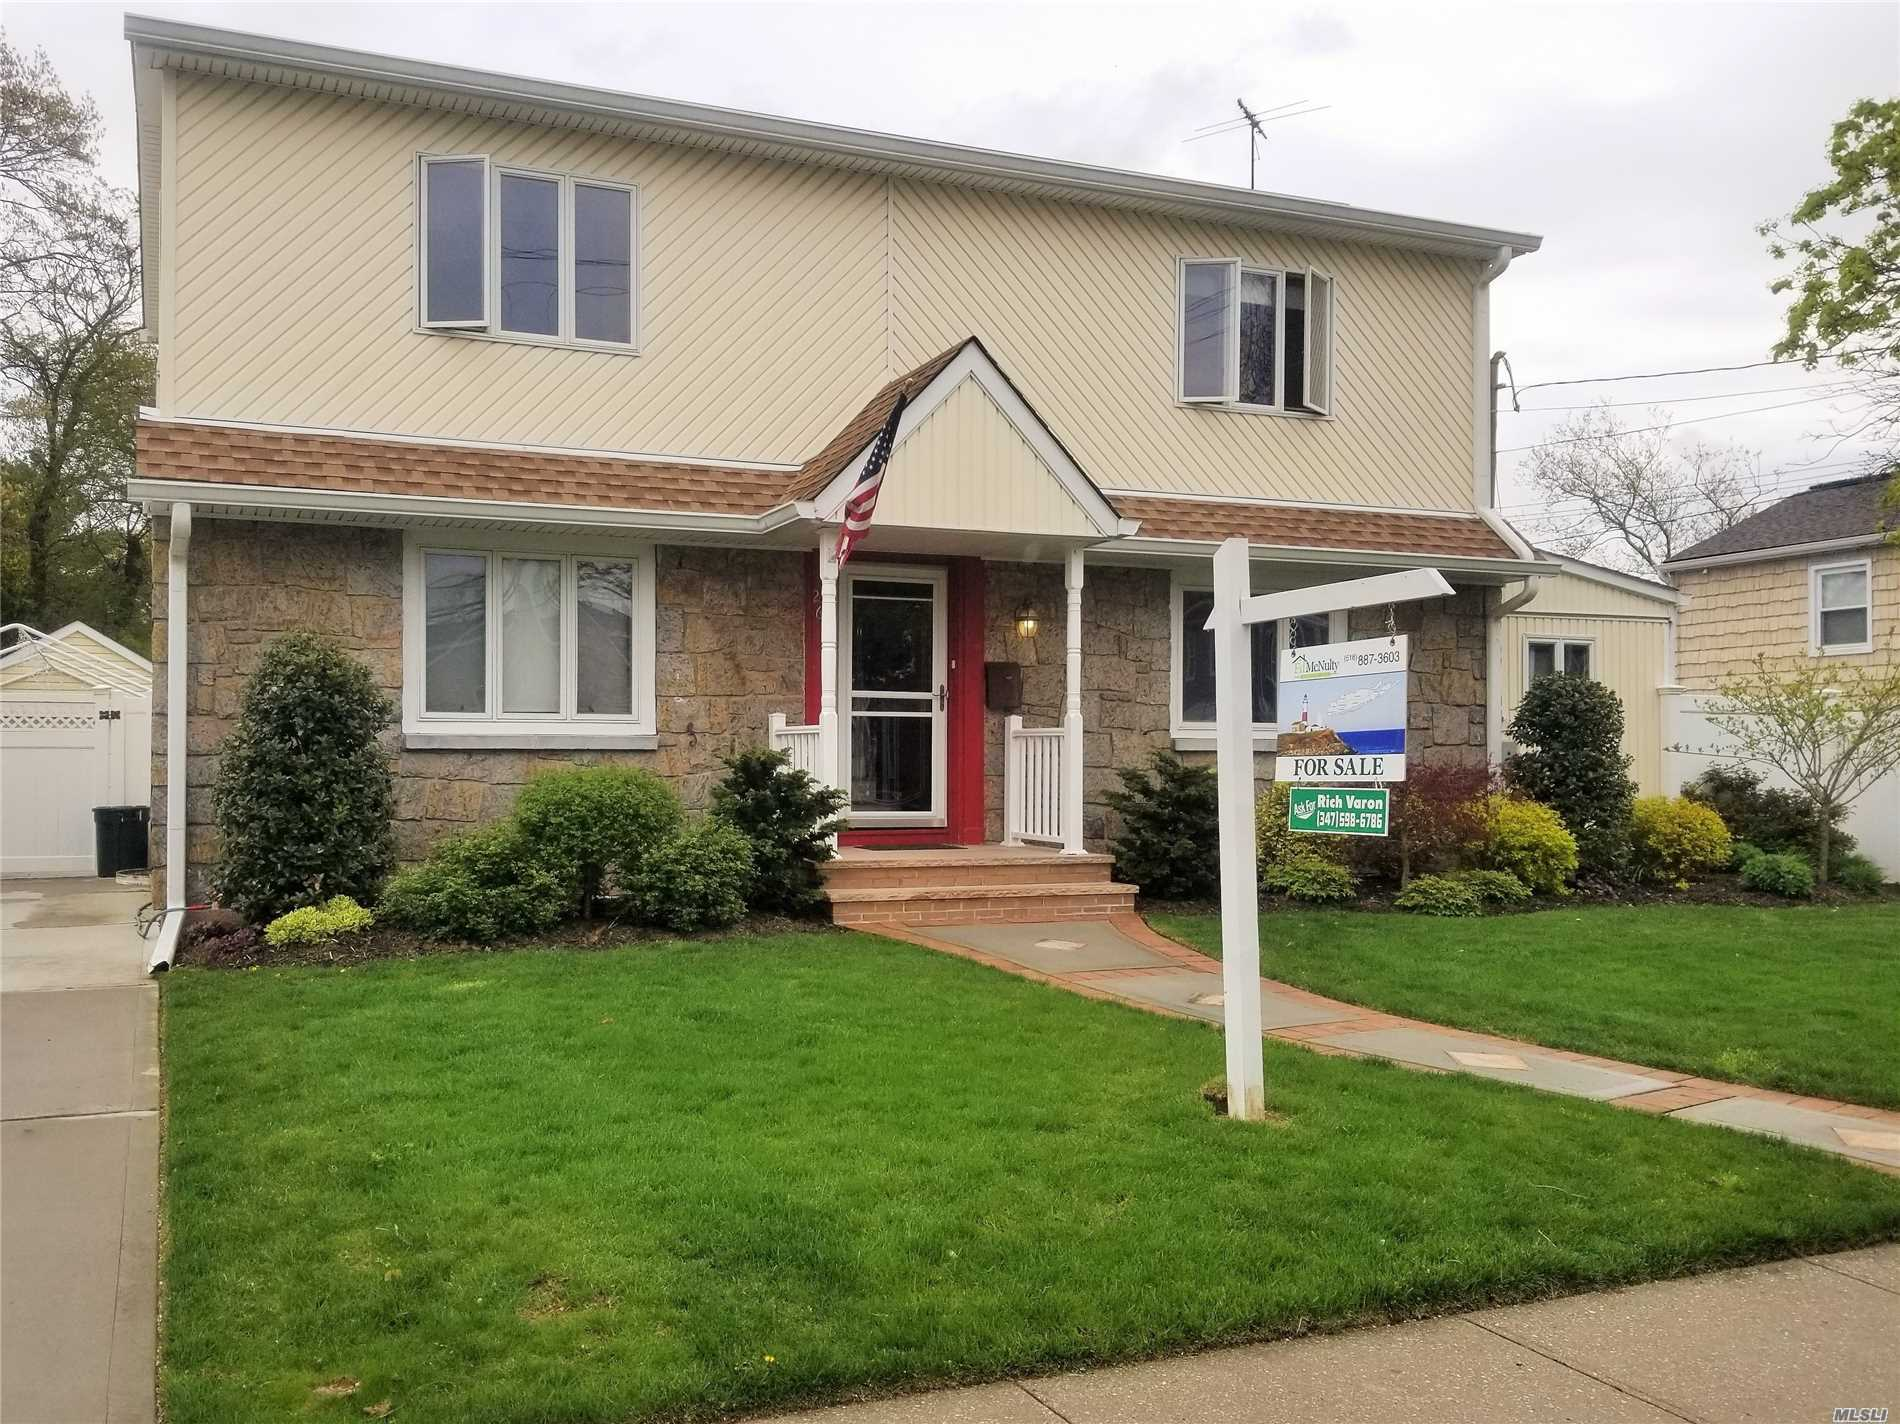 Motivated Seller! Price reduction on this 5 Bdrm Colonial W/1728 Int Sqft. Rare find! Oceanside School District! Finished Bsmt w/ plenty of closets and storage. Oversized Lot - 7, 696 Sqft. Roof 5 Yrs Young, Anderson Windows, 3 Zone Heating, 6 Zone Sprinkler System, Solar Panels (Under Lease) & Hw Heater 2 Yrs Young! Here today, gone tomorrow!! ***Taxes were grieved this year & with new assessment we are expecting a huge reduction!!*** Seller will consider a credit to help with taxes!!